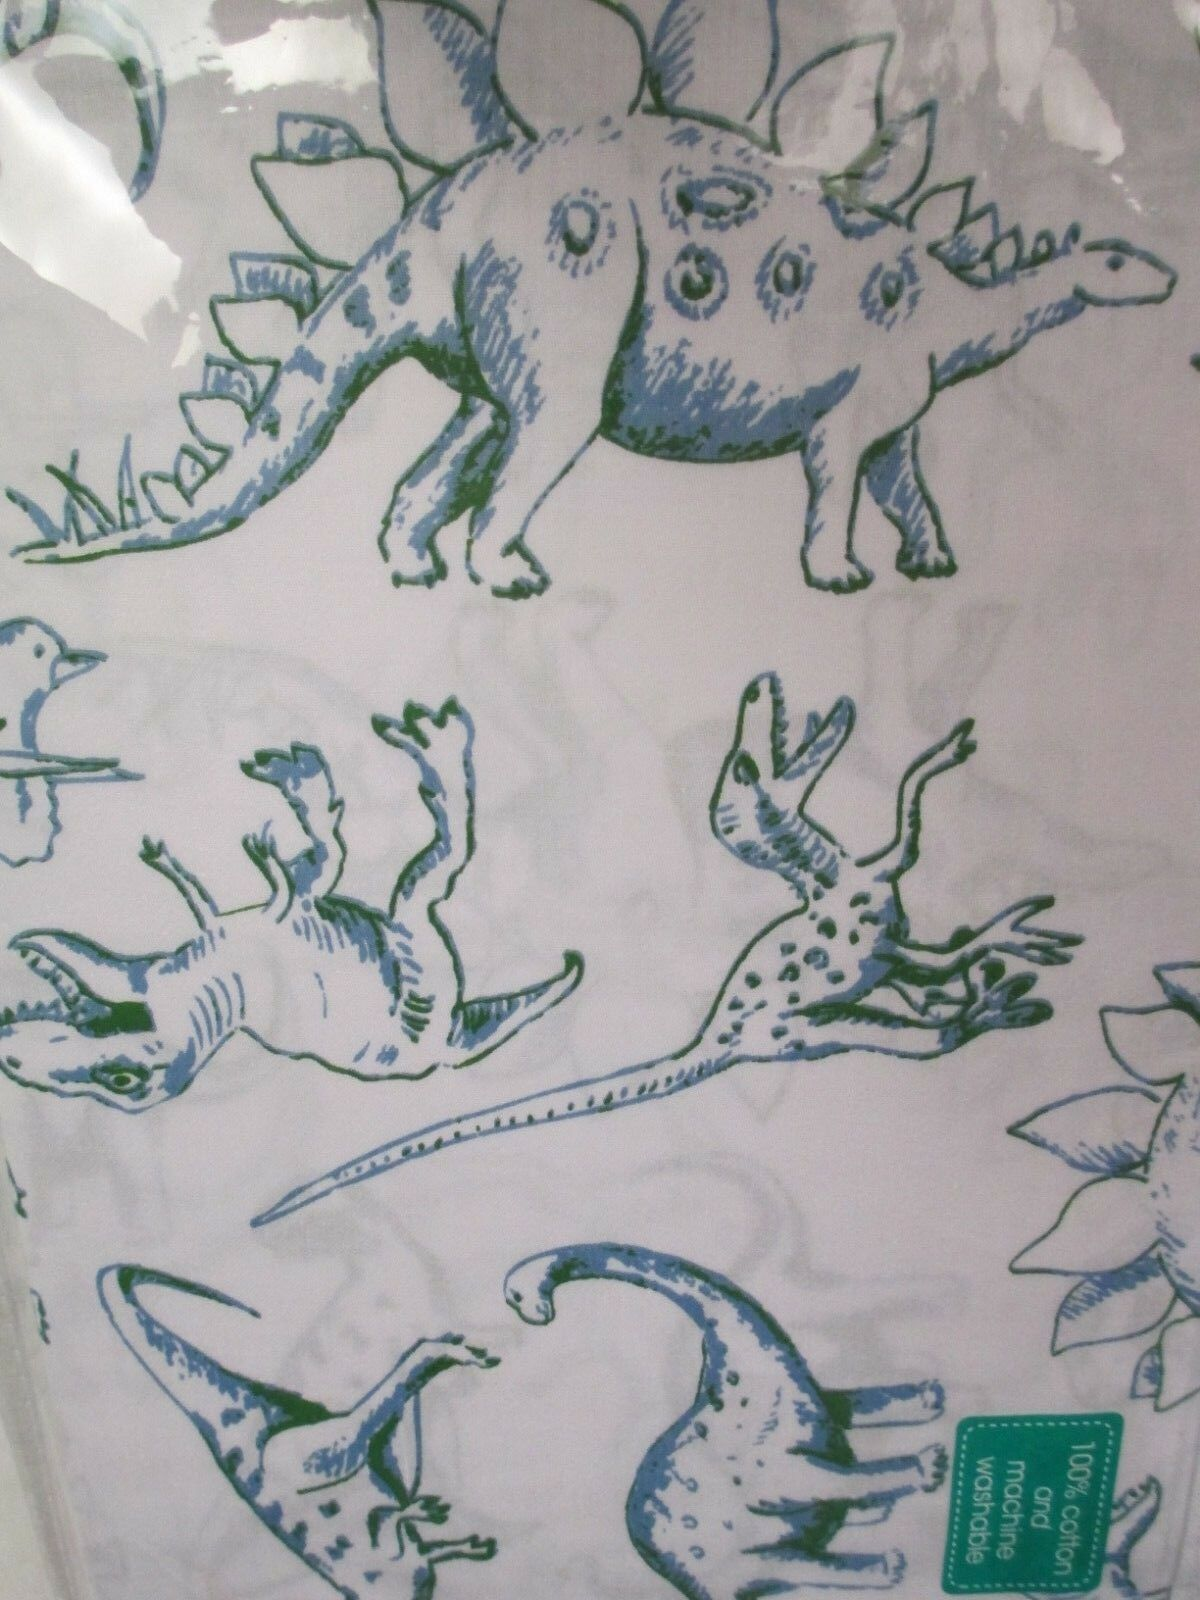 New Authentic Authentic Authentic Kids 100% Cotton Dinosaurs Weiß Blau Grün Sheet Set - Full 54251e